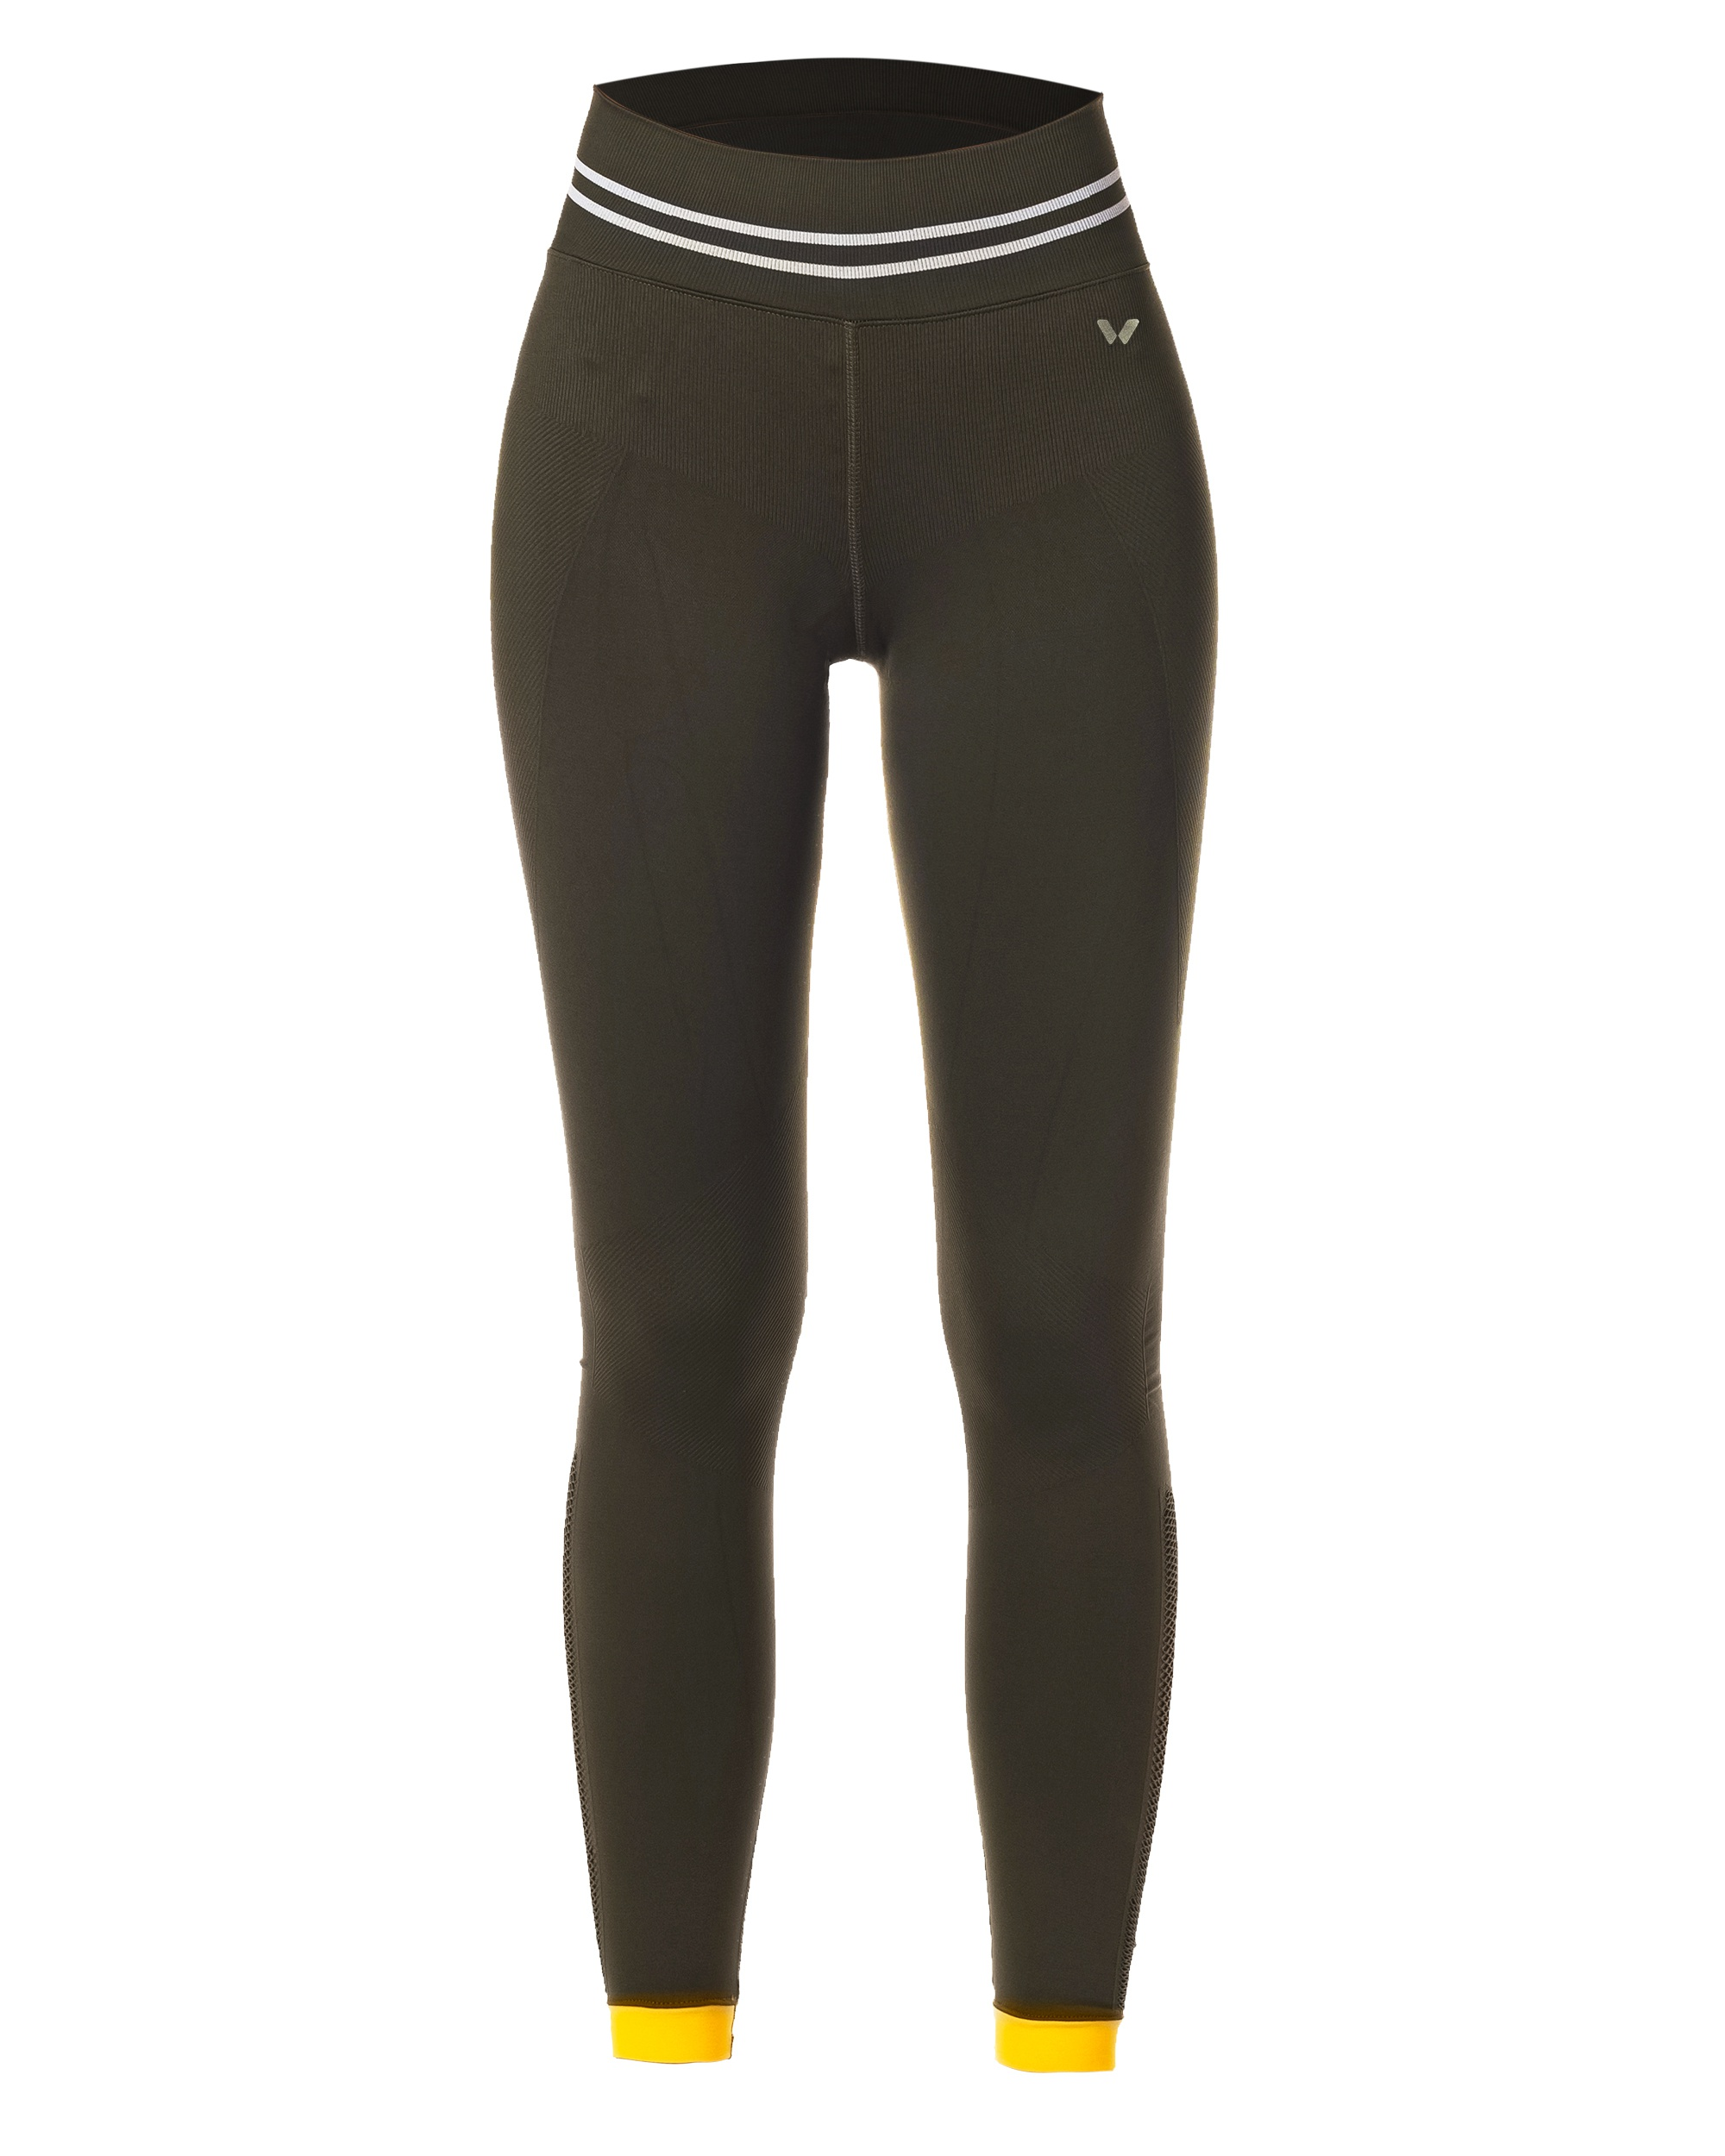 LEGGINGS SEAMLESS GREEN LEGGINGS CE IDAWEN - Woman and Fashion